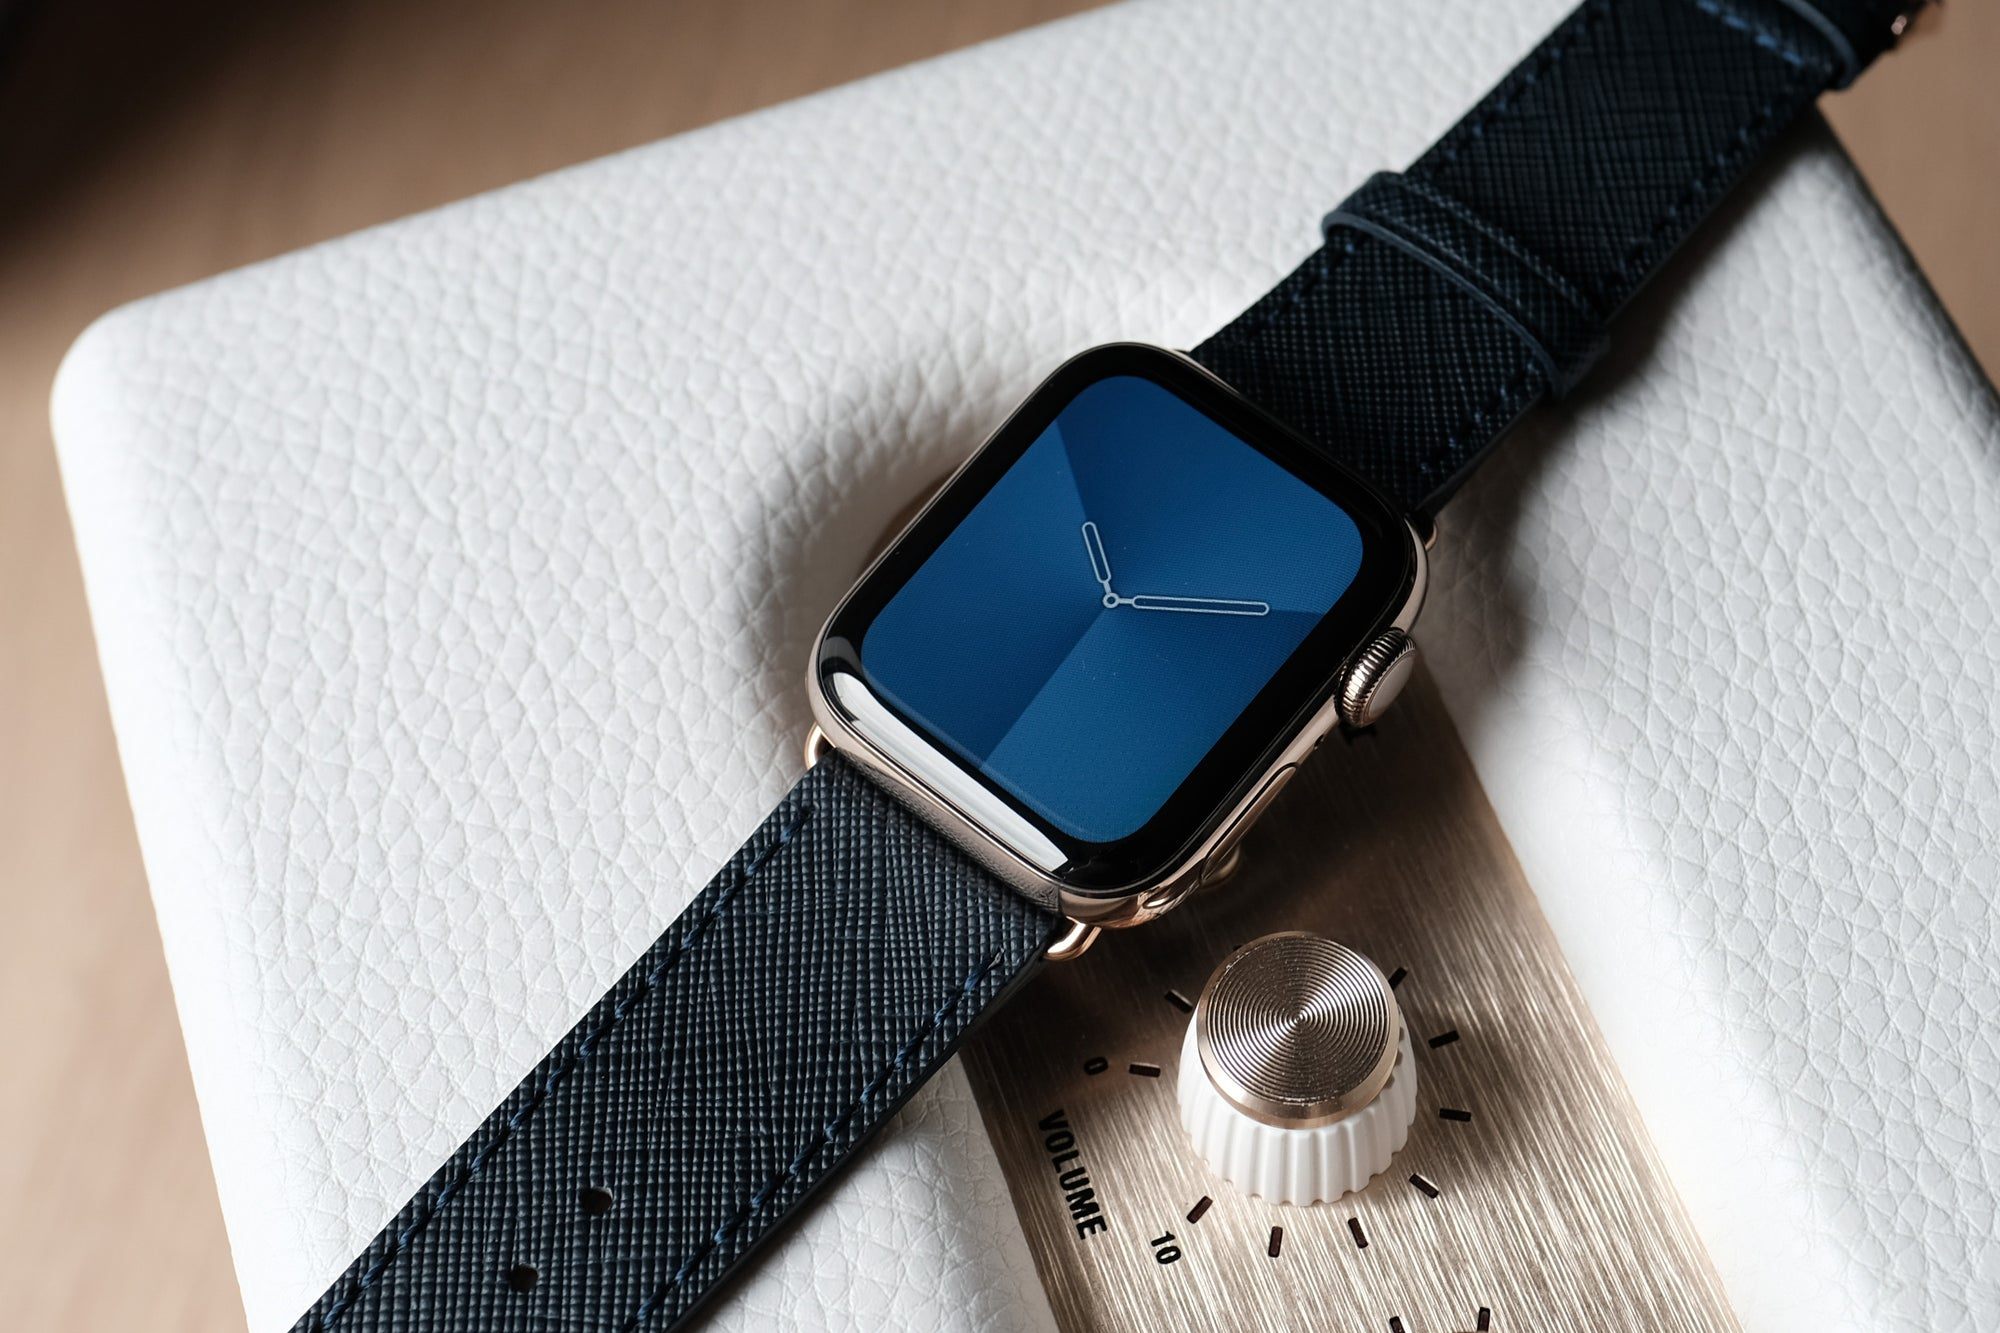 Pin and Buckle Apple Watch Bands - Saffiano - Textured Leather Apple Watch Bands - Navy Blue